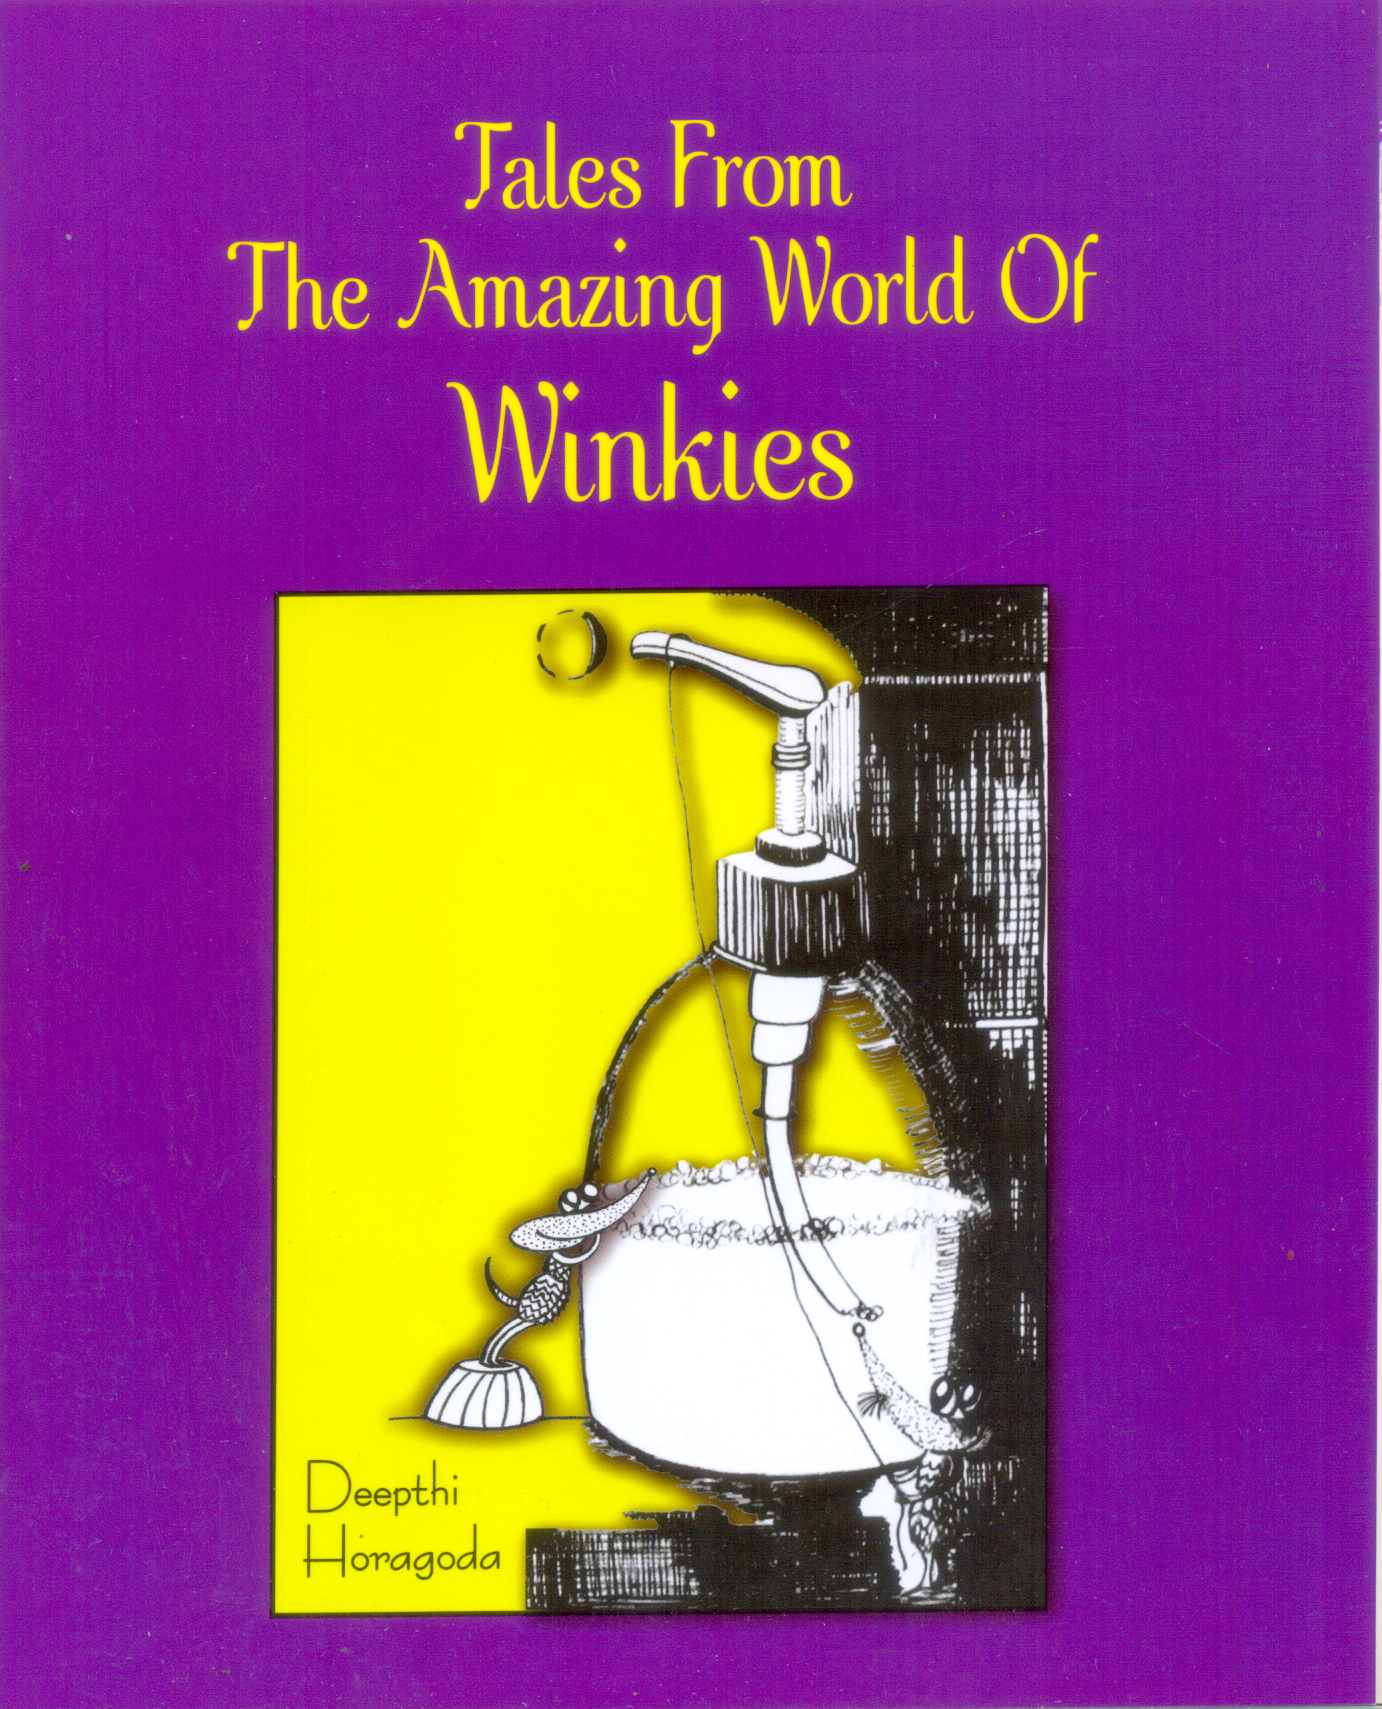 Tales From The Amazing World Of Winkies